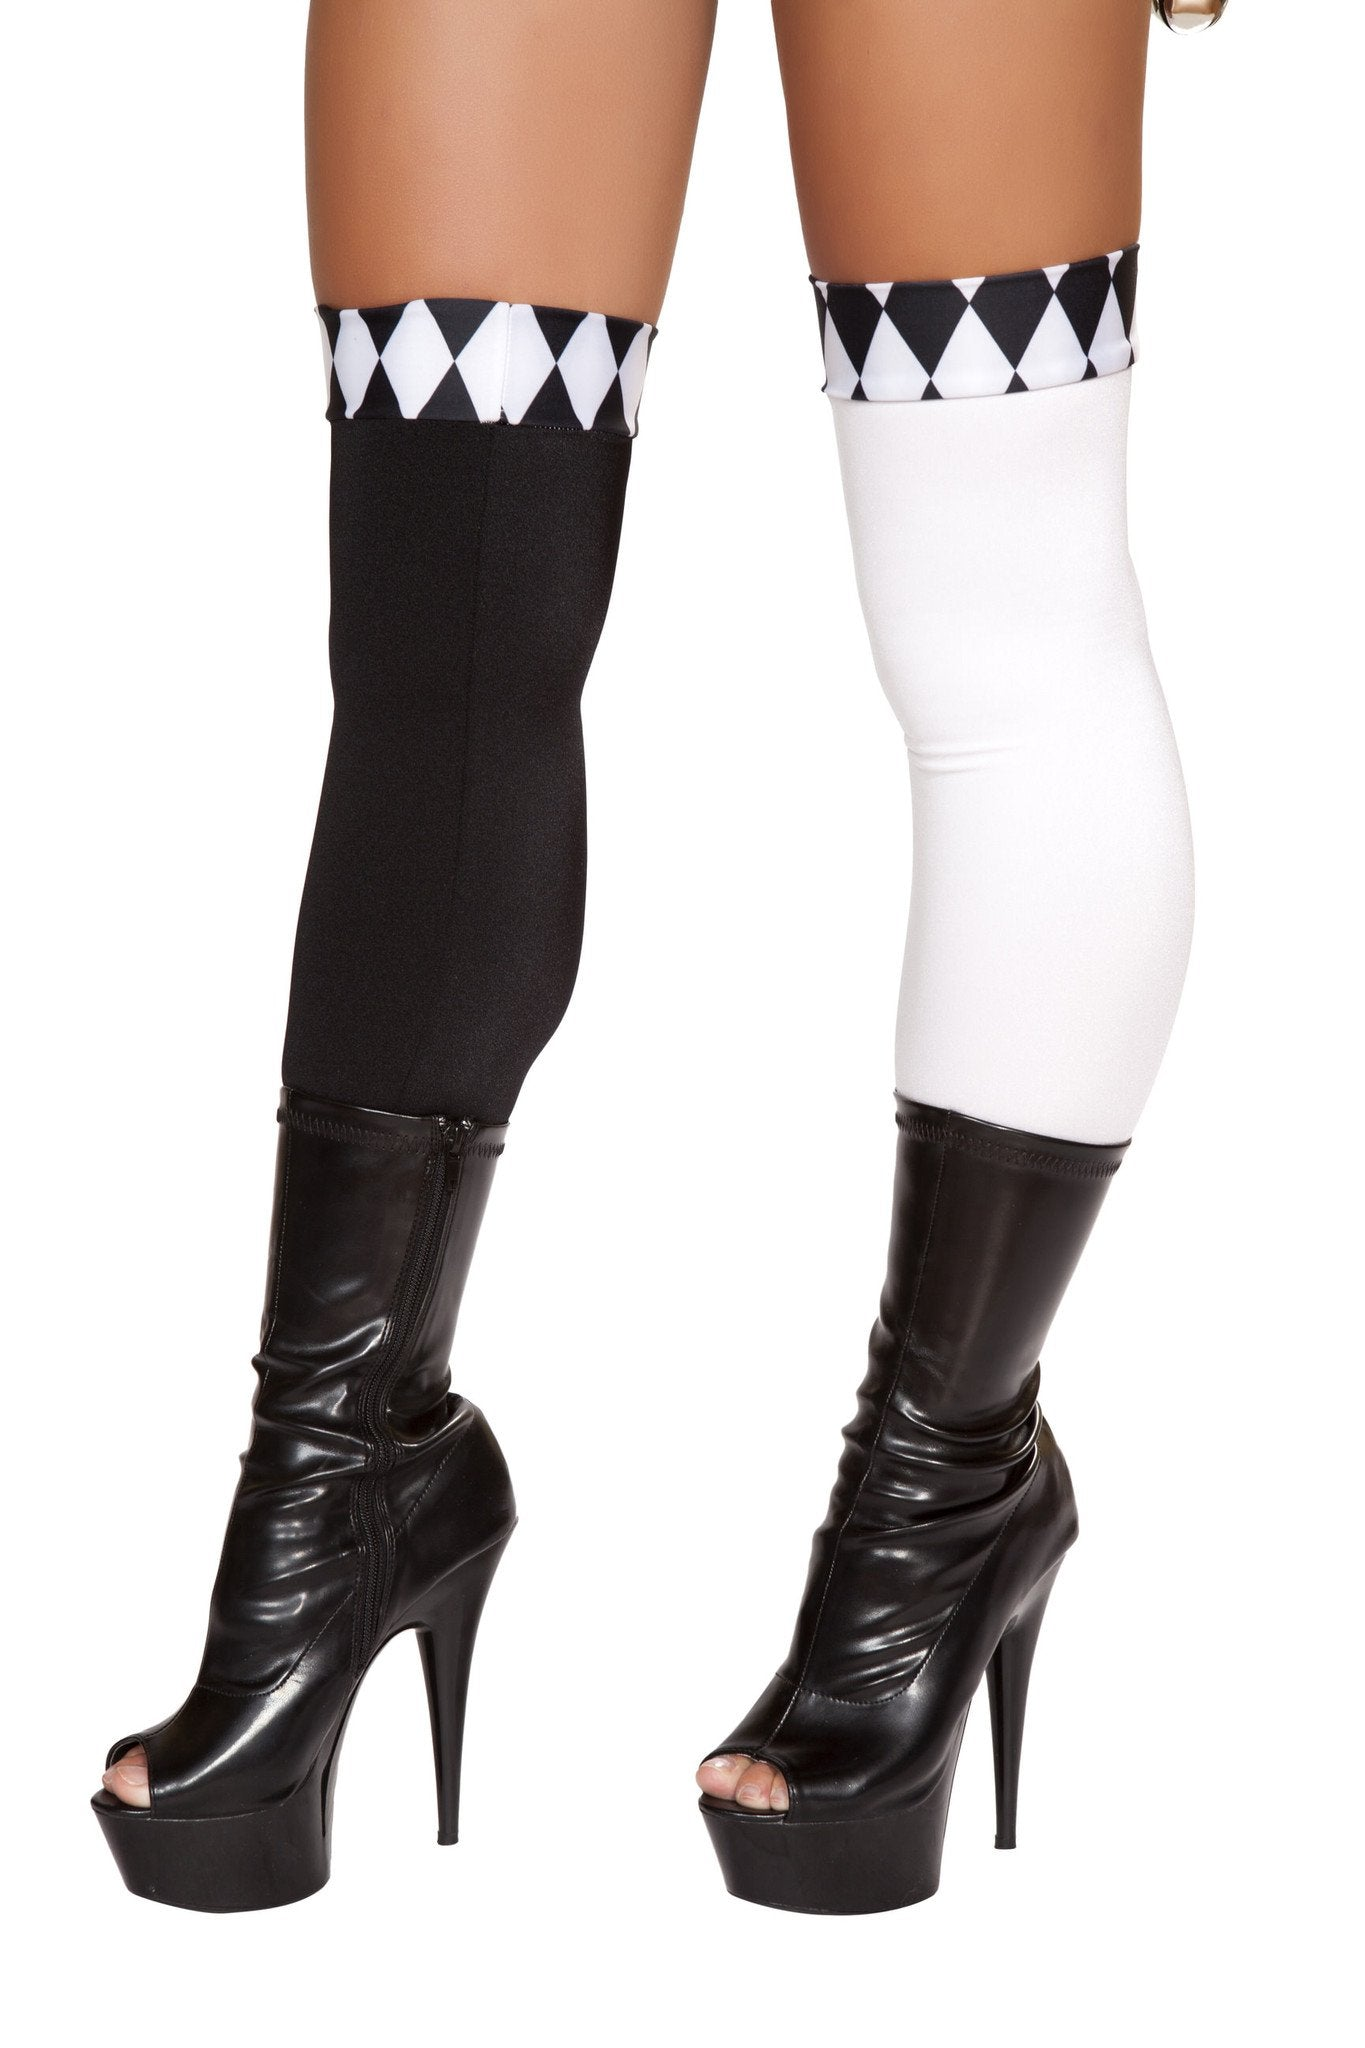 ST4673 - Wicked Jester Stockings